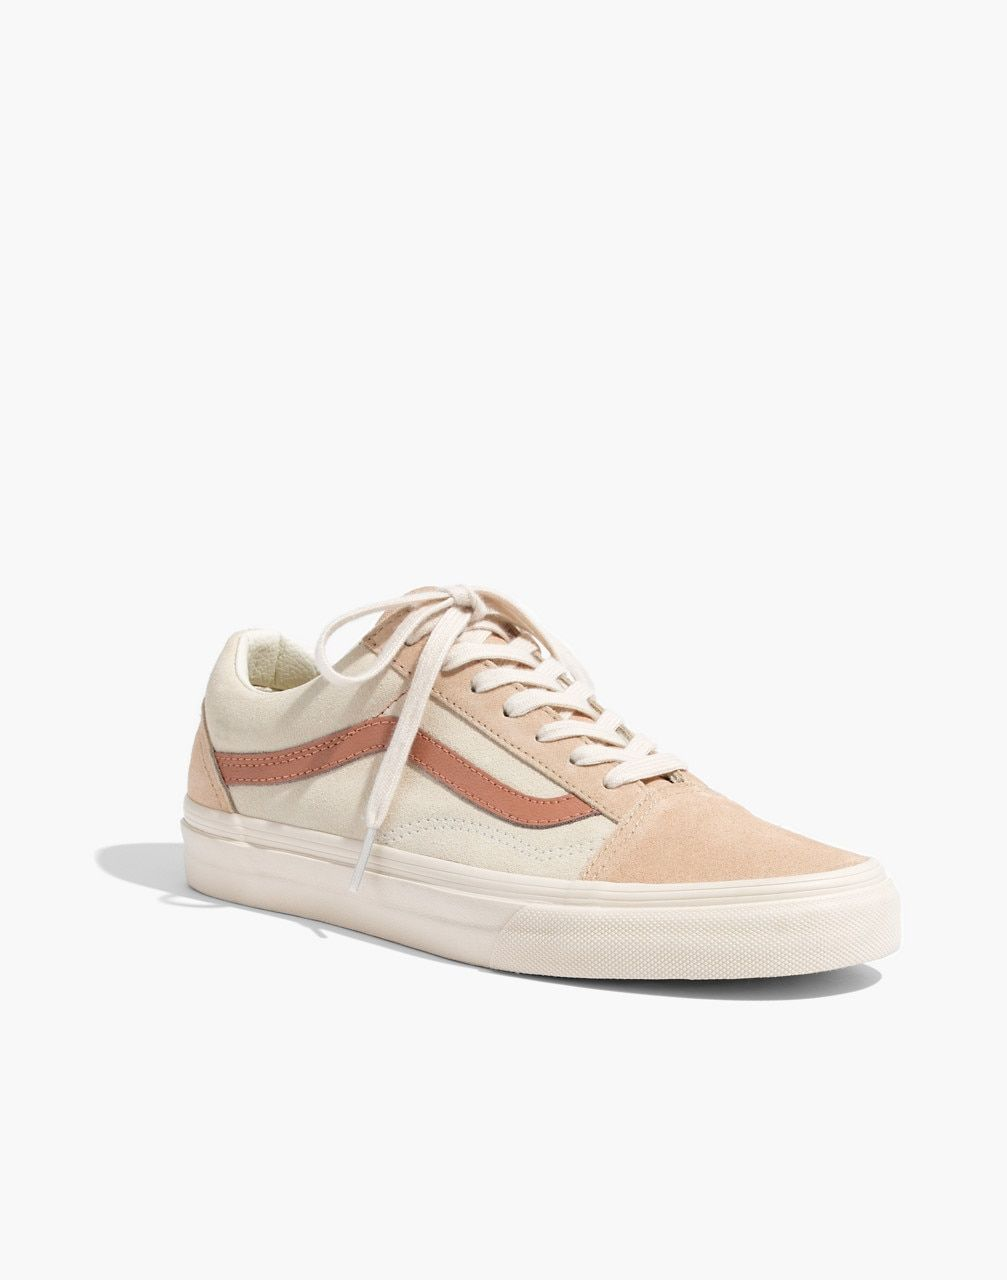 e737af600c8 Madewell x Vans® Unisex Old Skool Lace-Up Sneakers in Camel Colorblock